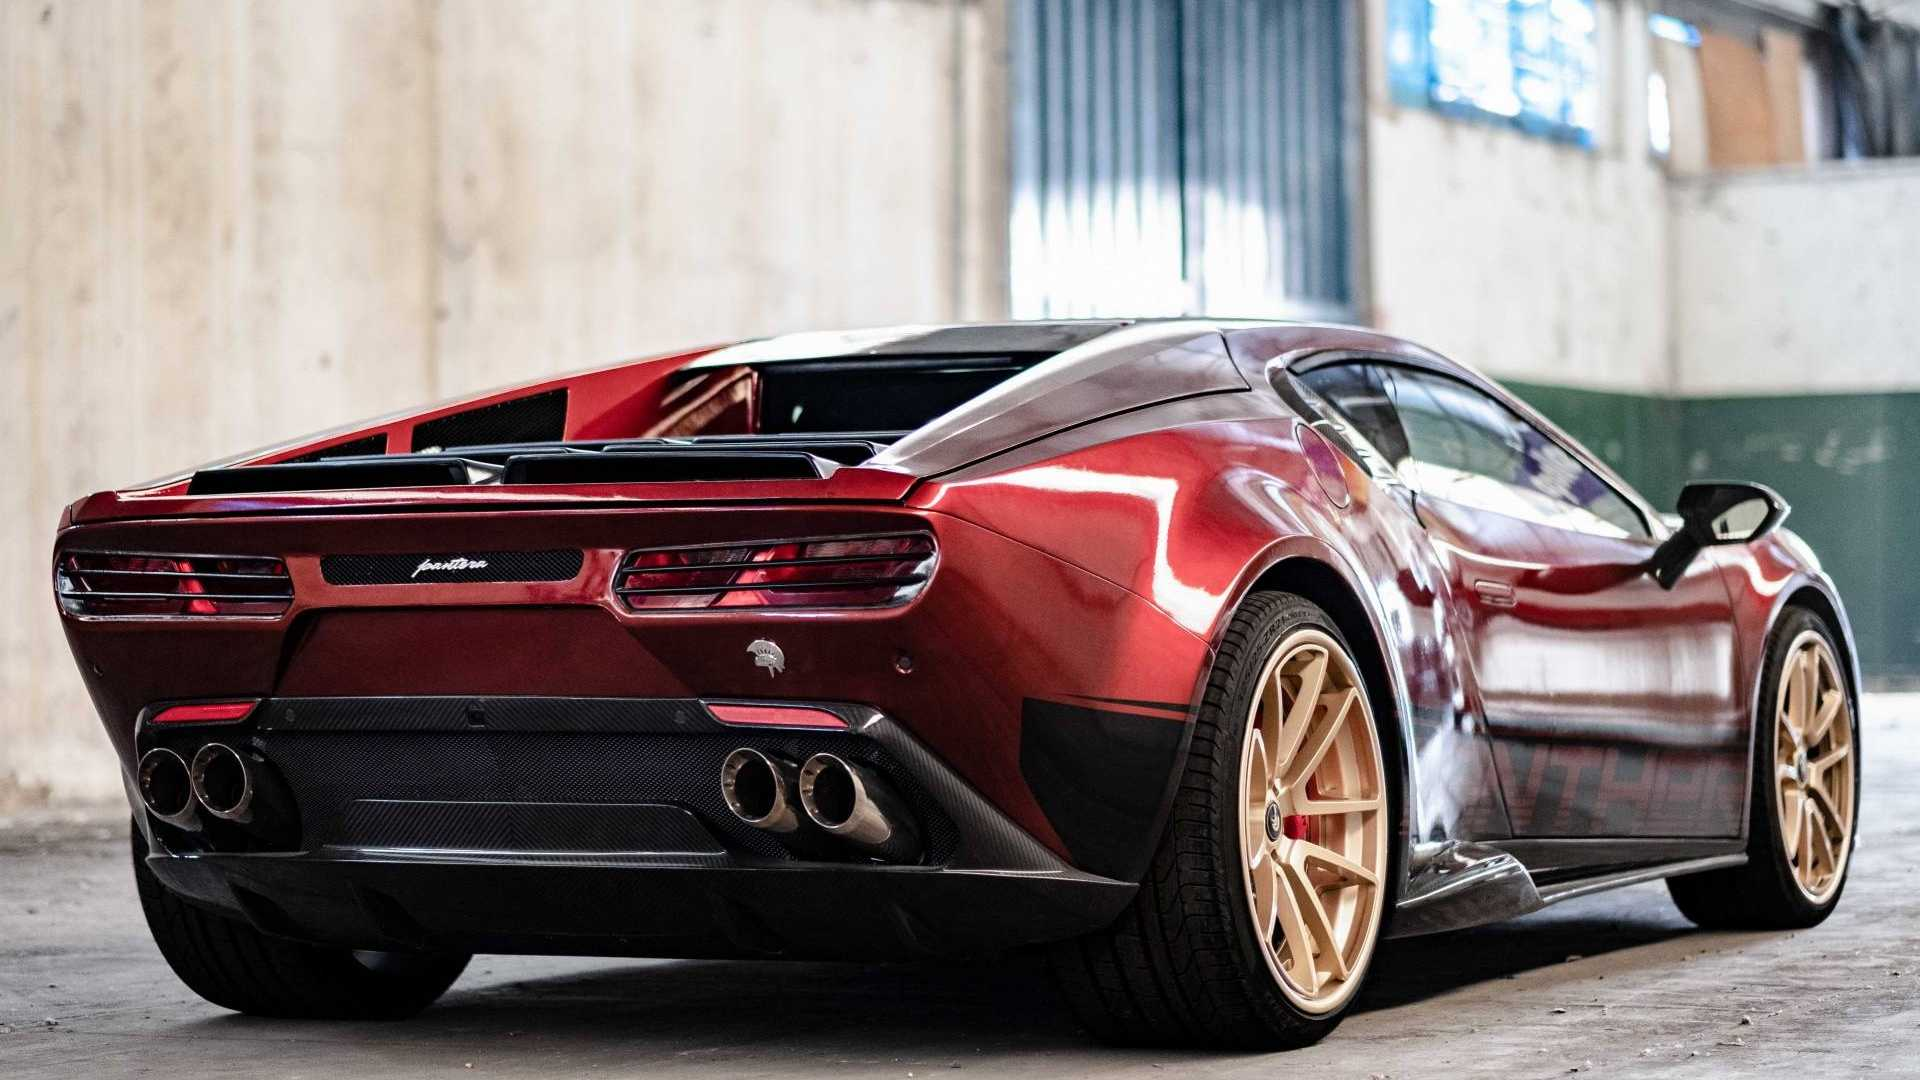 Ares Panther Is the Lamborghini Huracan-based DeTomaso ...